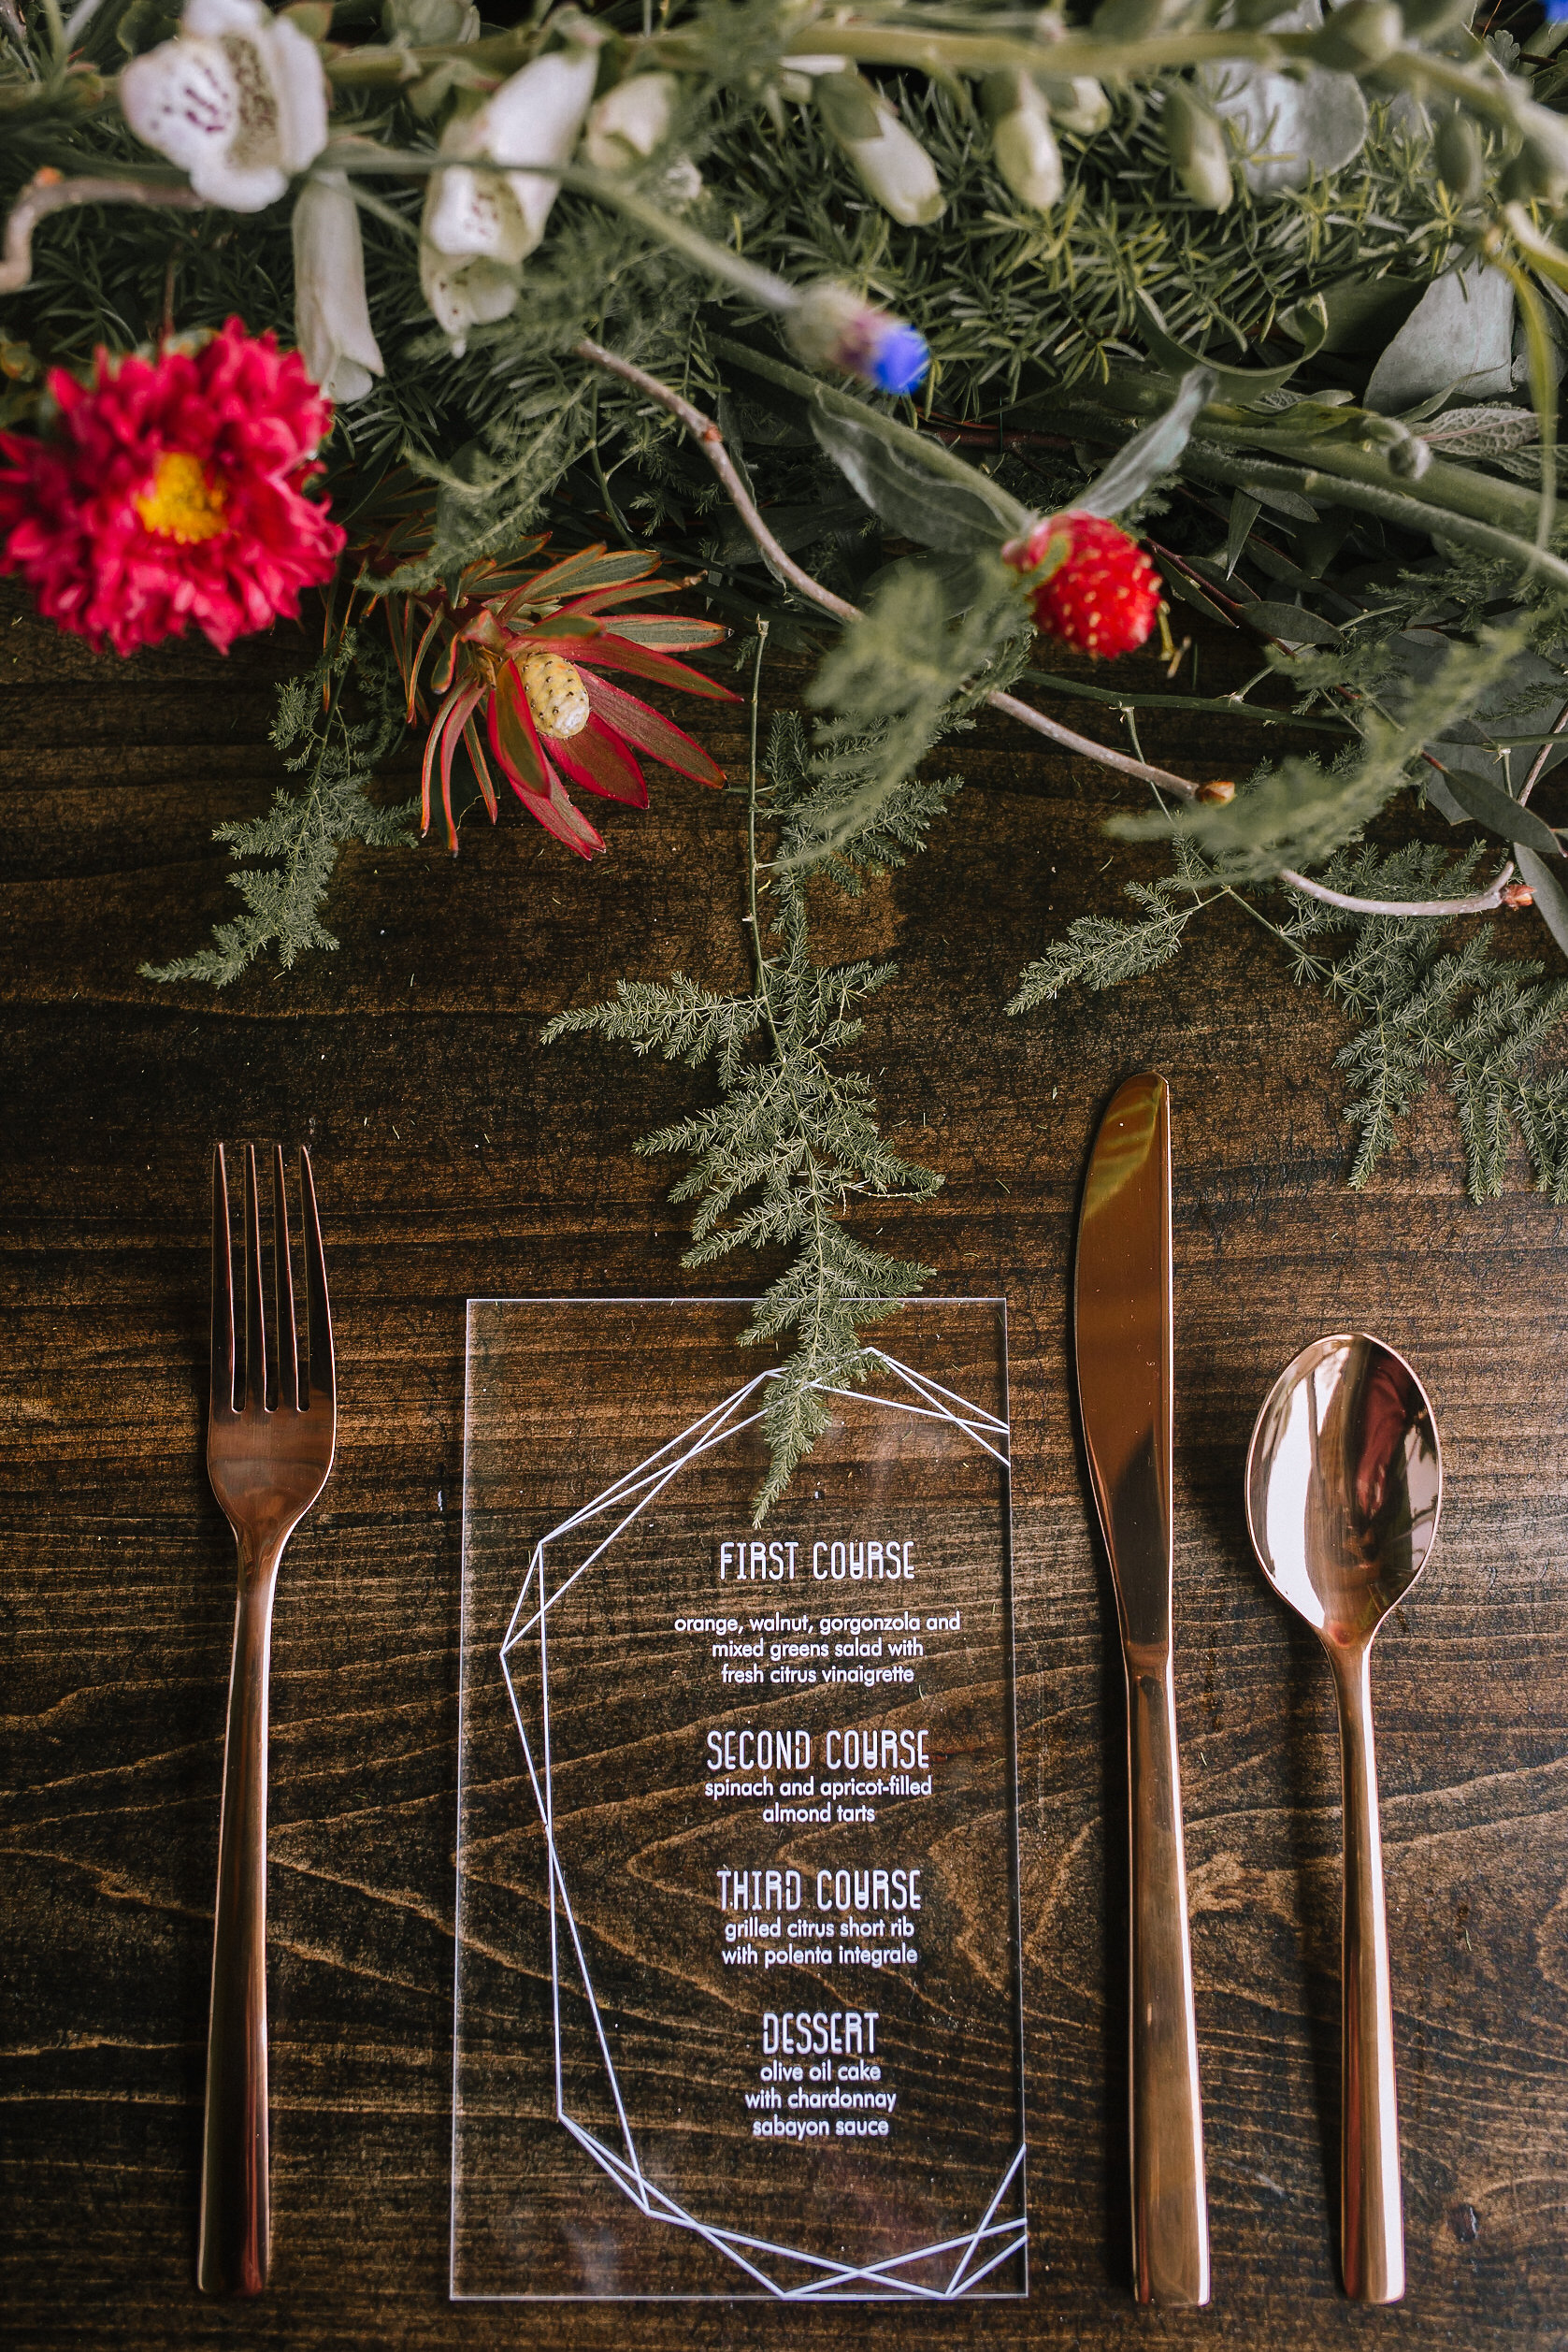 Acrylic menu from Purple Wagon Designs. Cutlery from Target. Farm table from Vintage Alley Rentals. Flowers from Community Flower Shop.